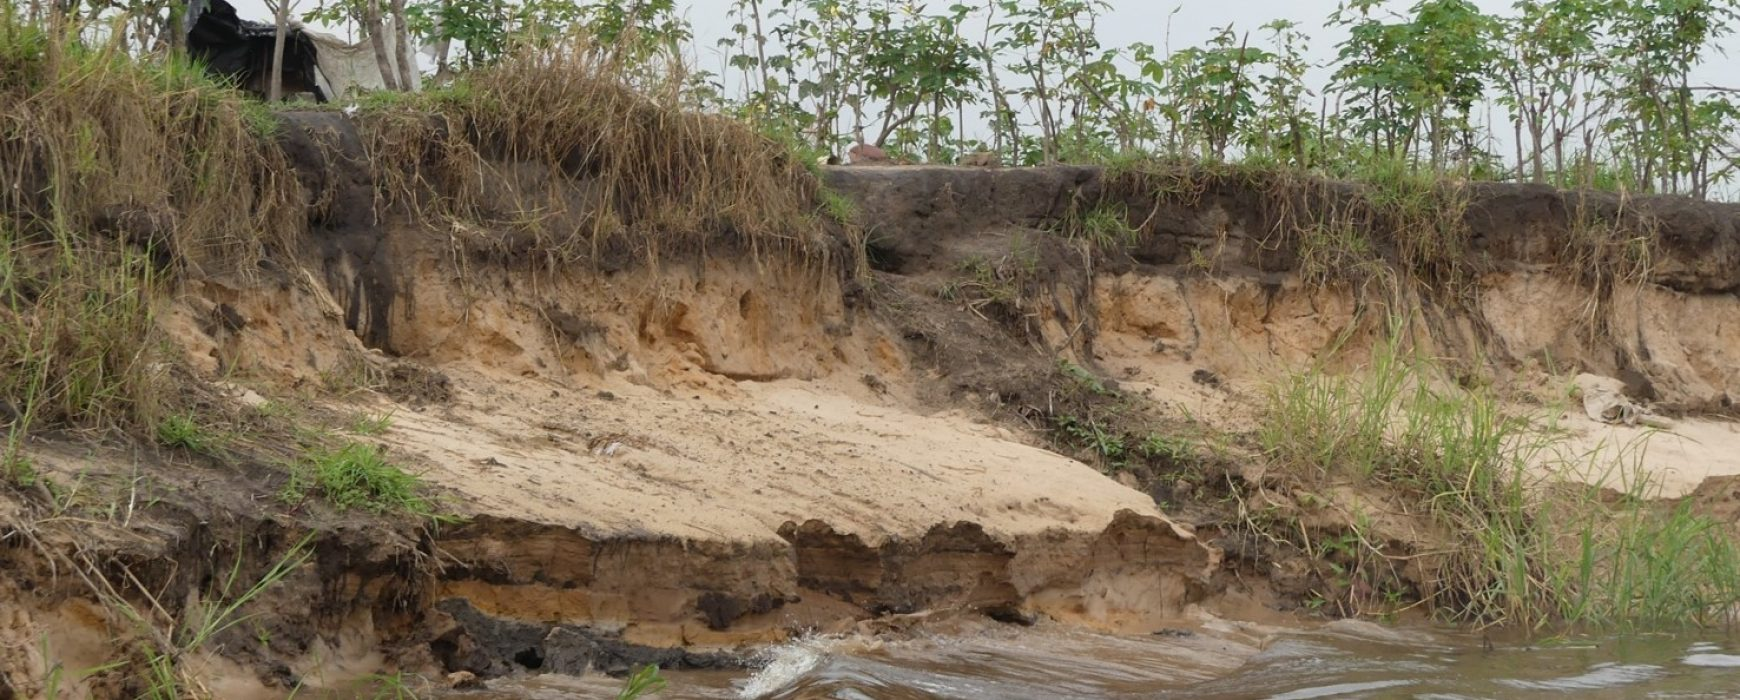 The IGN FI / BRLi consortium is awarded a regional project to assess hazards, vulnerabilities and risks in Central Africa